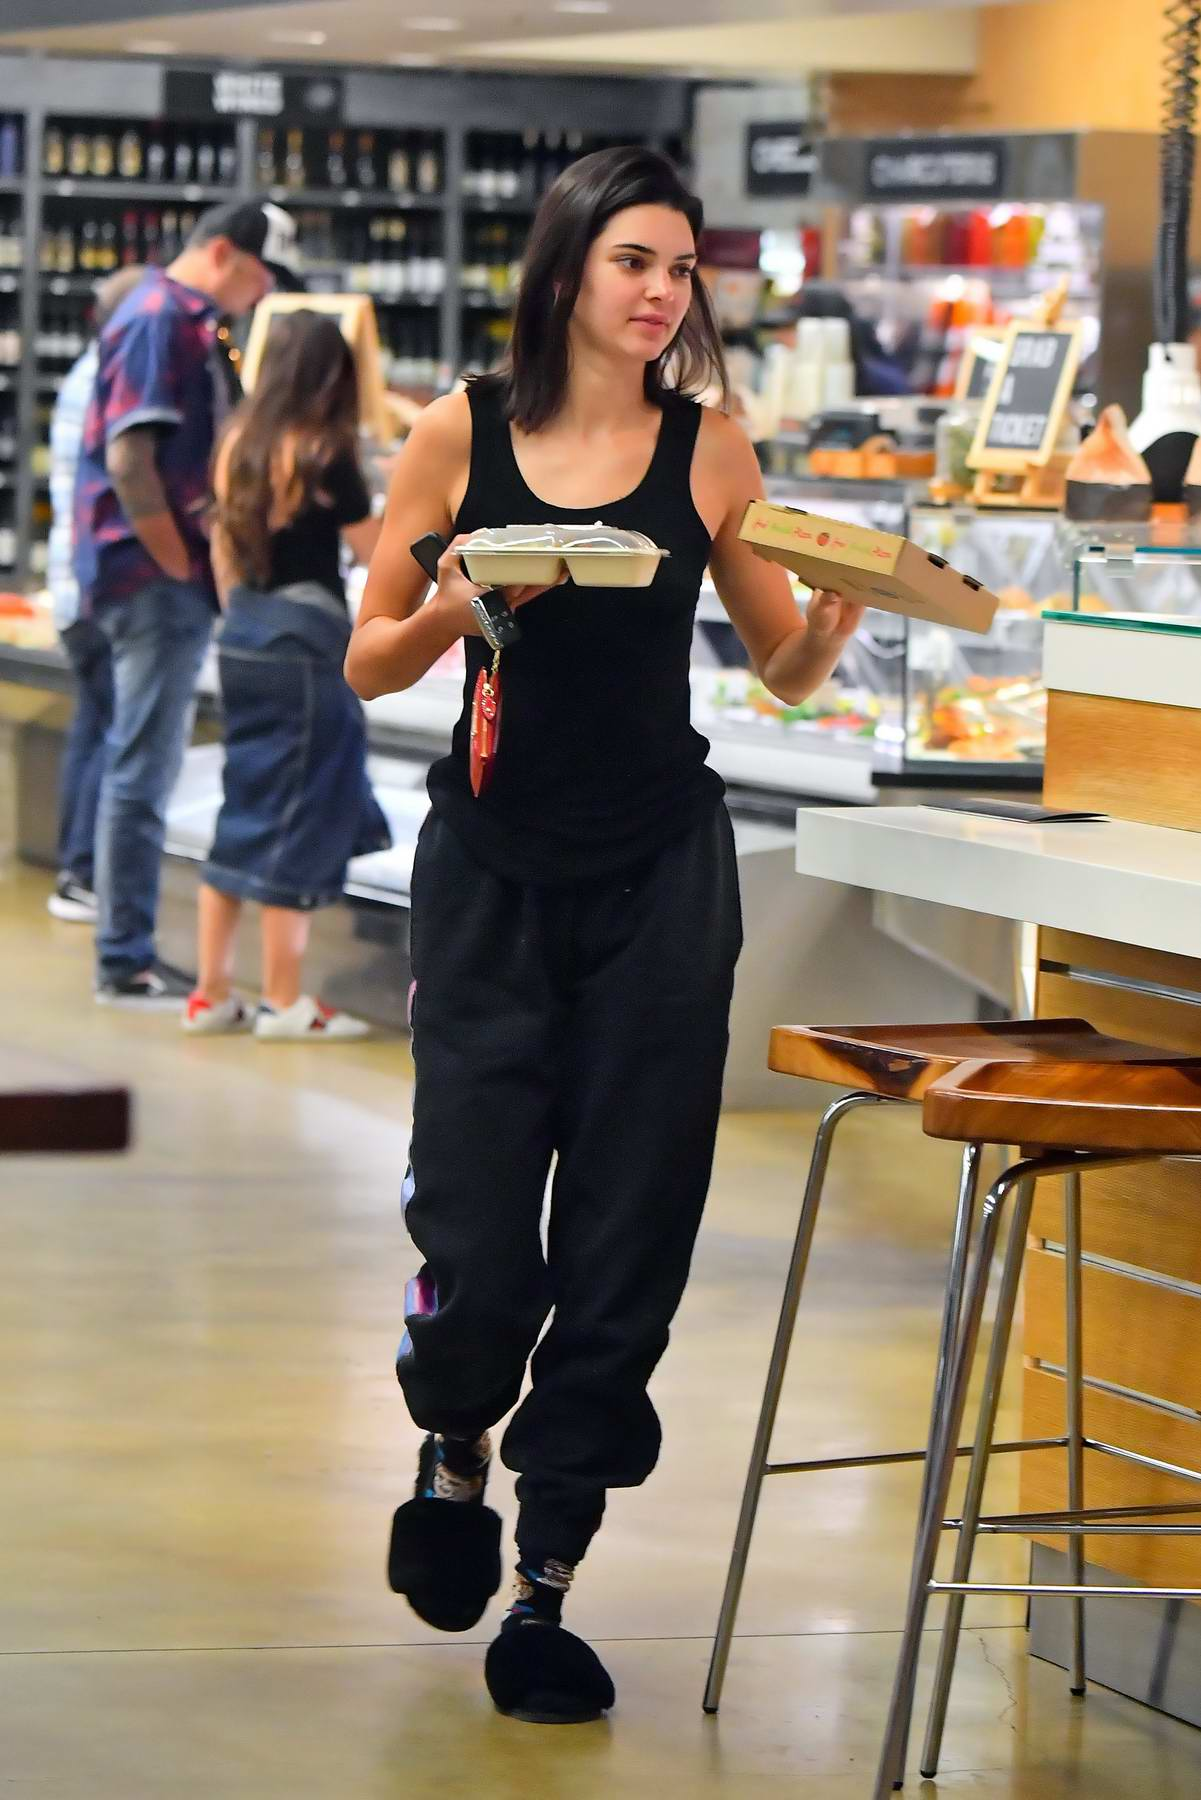 Kendall Jenner stops by a grocery store for a late night slice of pizza in Los Angeles